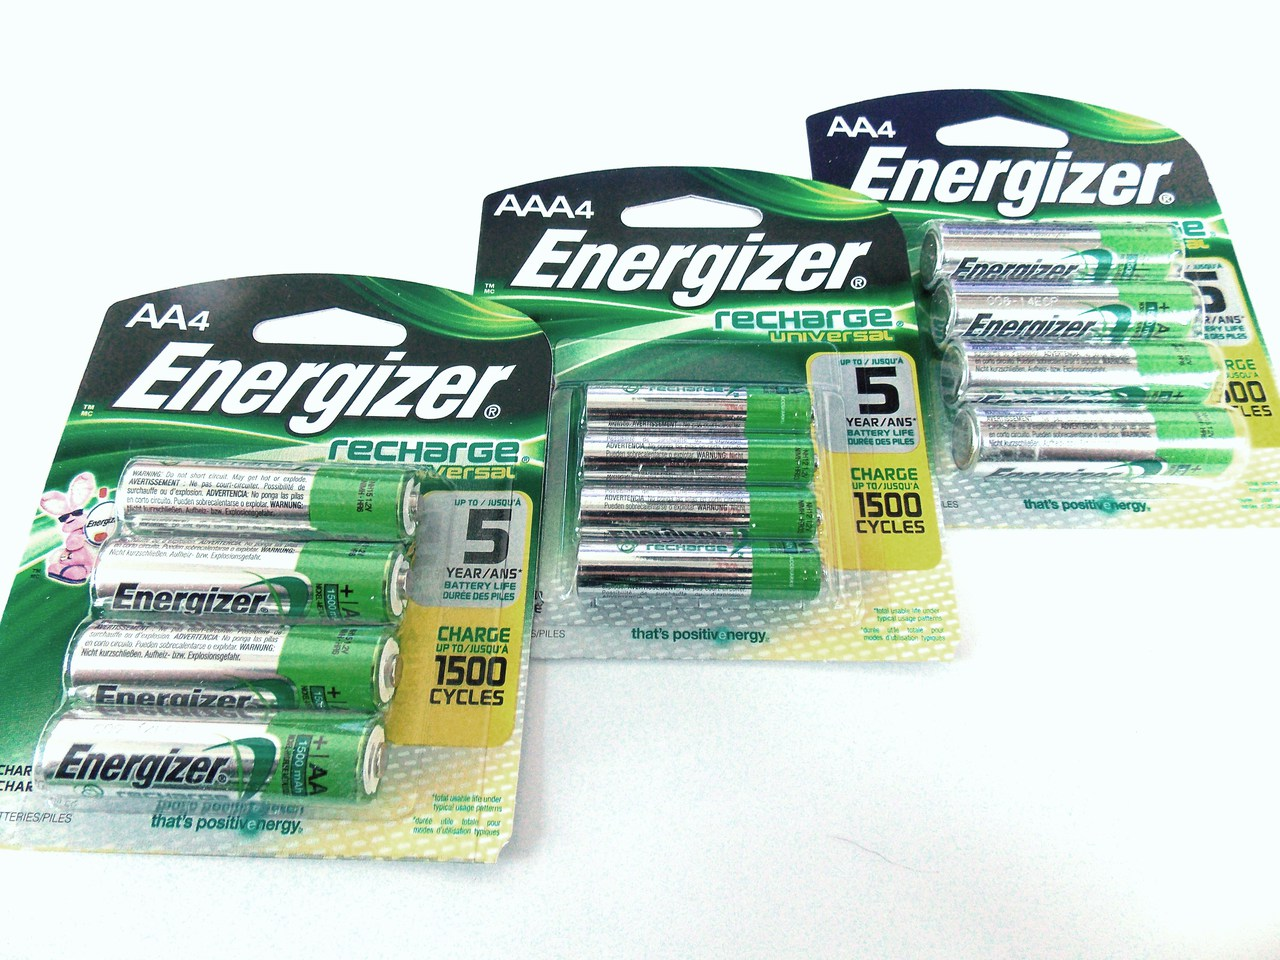 12 Piece Combo Pack - Energizer Rechargeable Batteries NiMH Retail 8 AA + 4 AAA + FREE SHIPPING